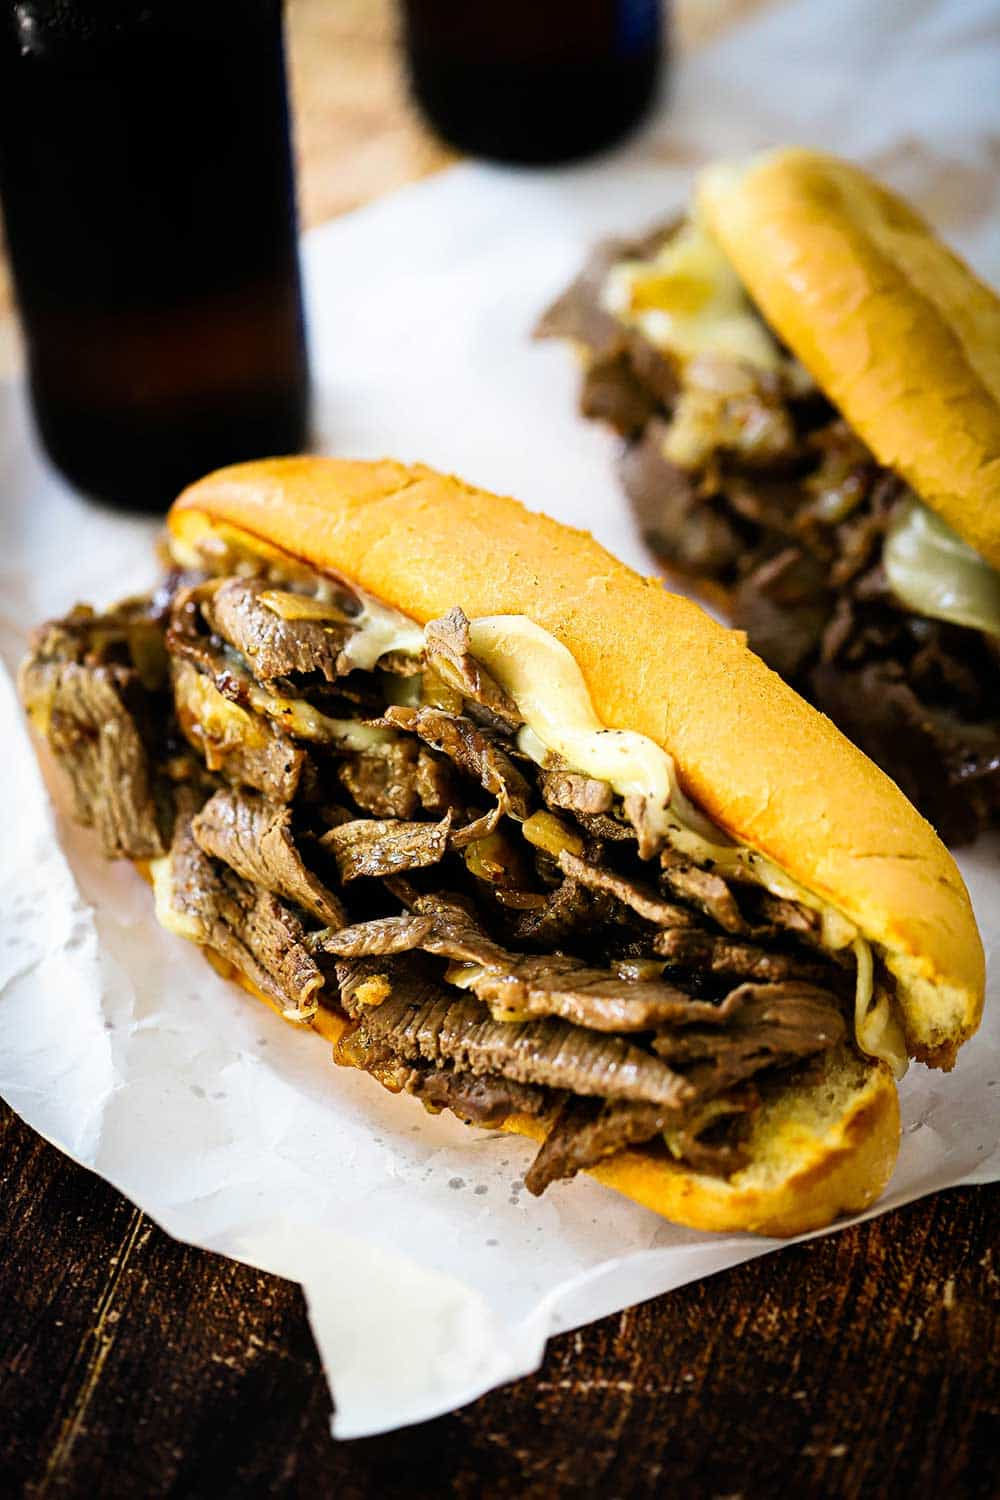 Two Philly cheesesteaks loaded with meat and cheese sitting on butcher paper next to two glasses of dark beer.